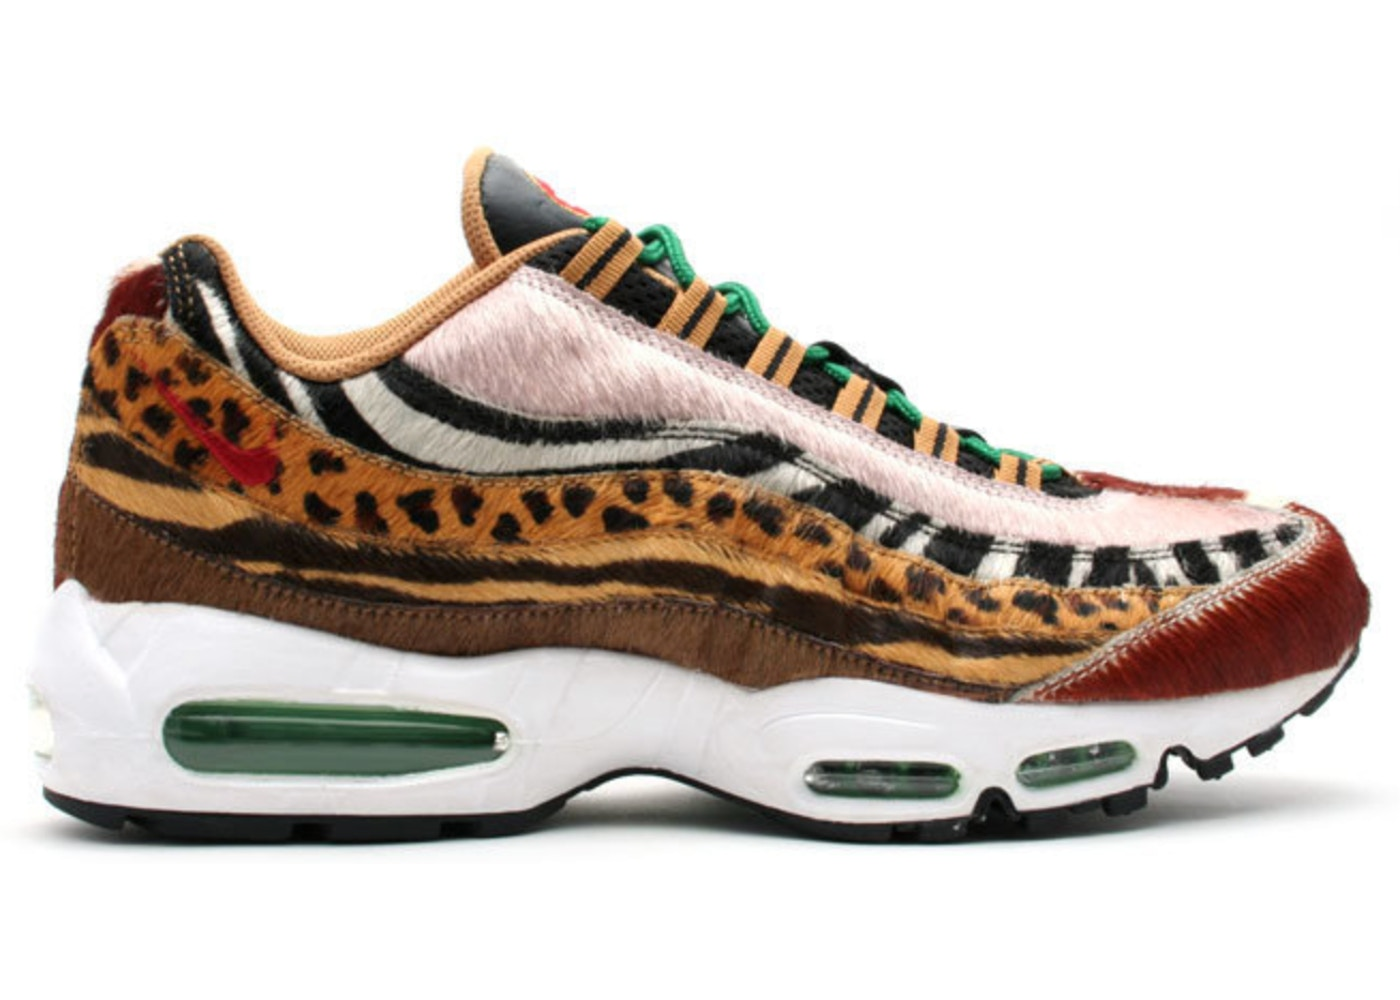 d0a92a2665cf Air Max 95 Atmos Animal Pack - 314993-261